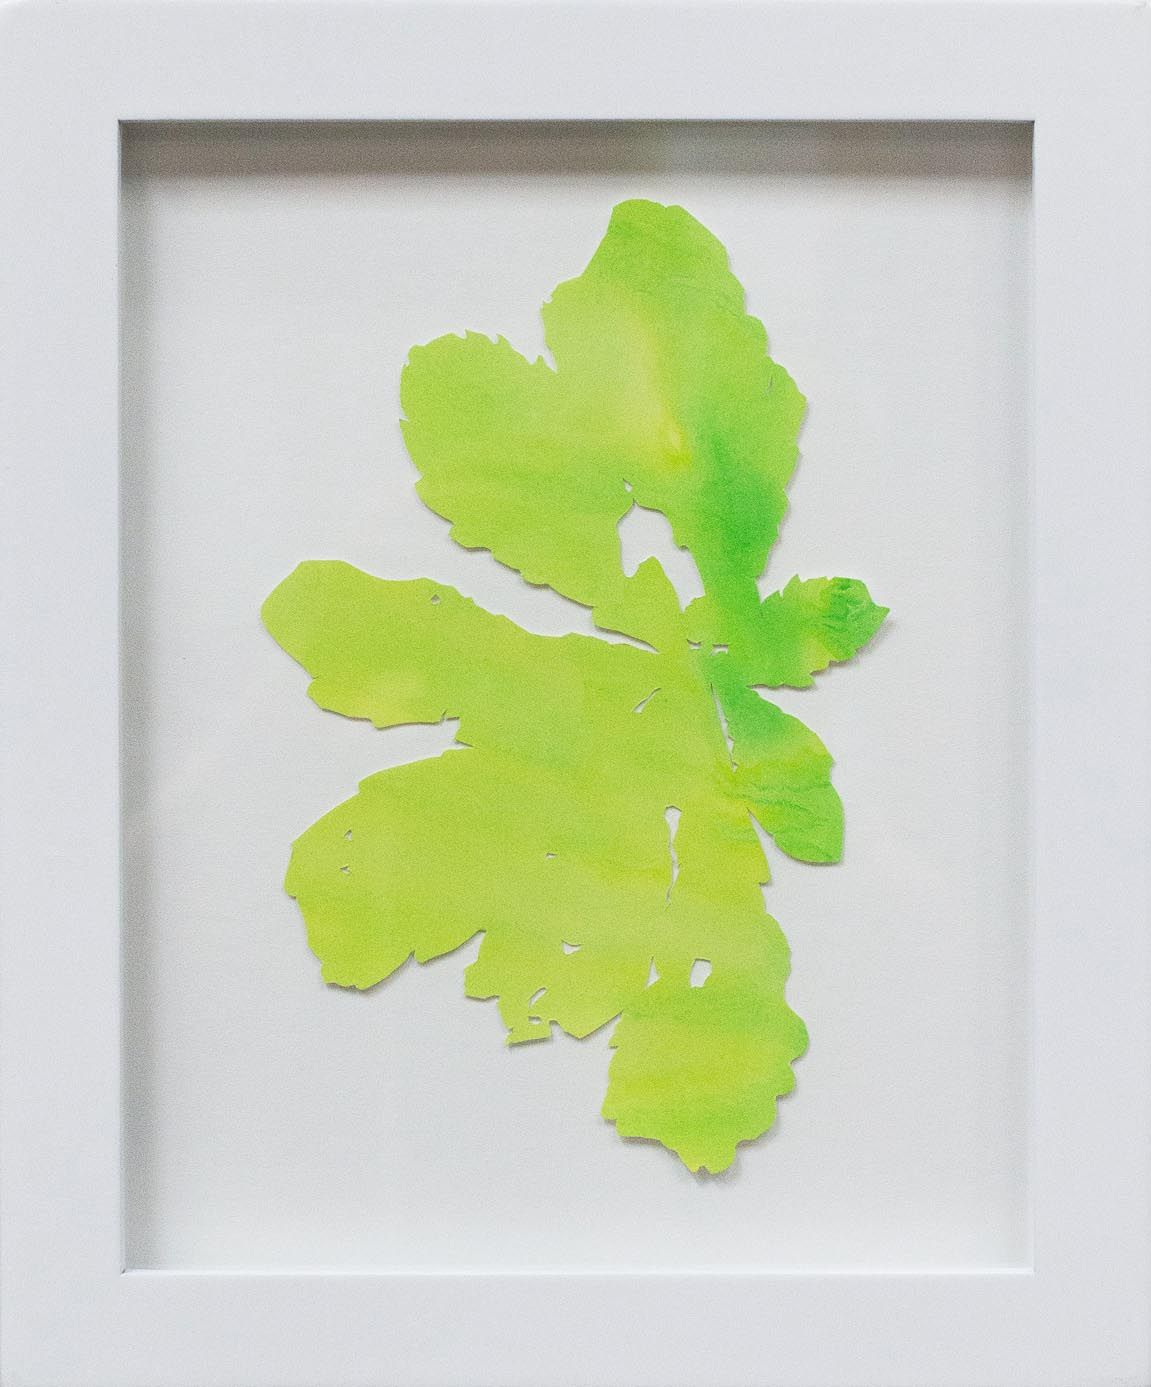 Hannah Cole  Fan-Shaped Weed, 2018  watercolor on cut paper  Framed: 10h x 8w in 25.40h x 20.32w cm  HC_063